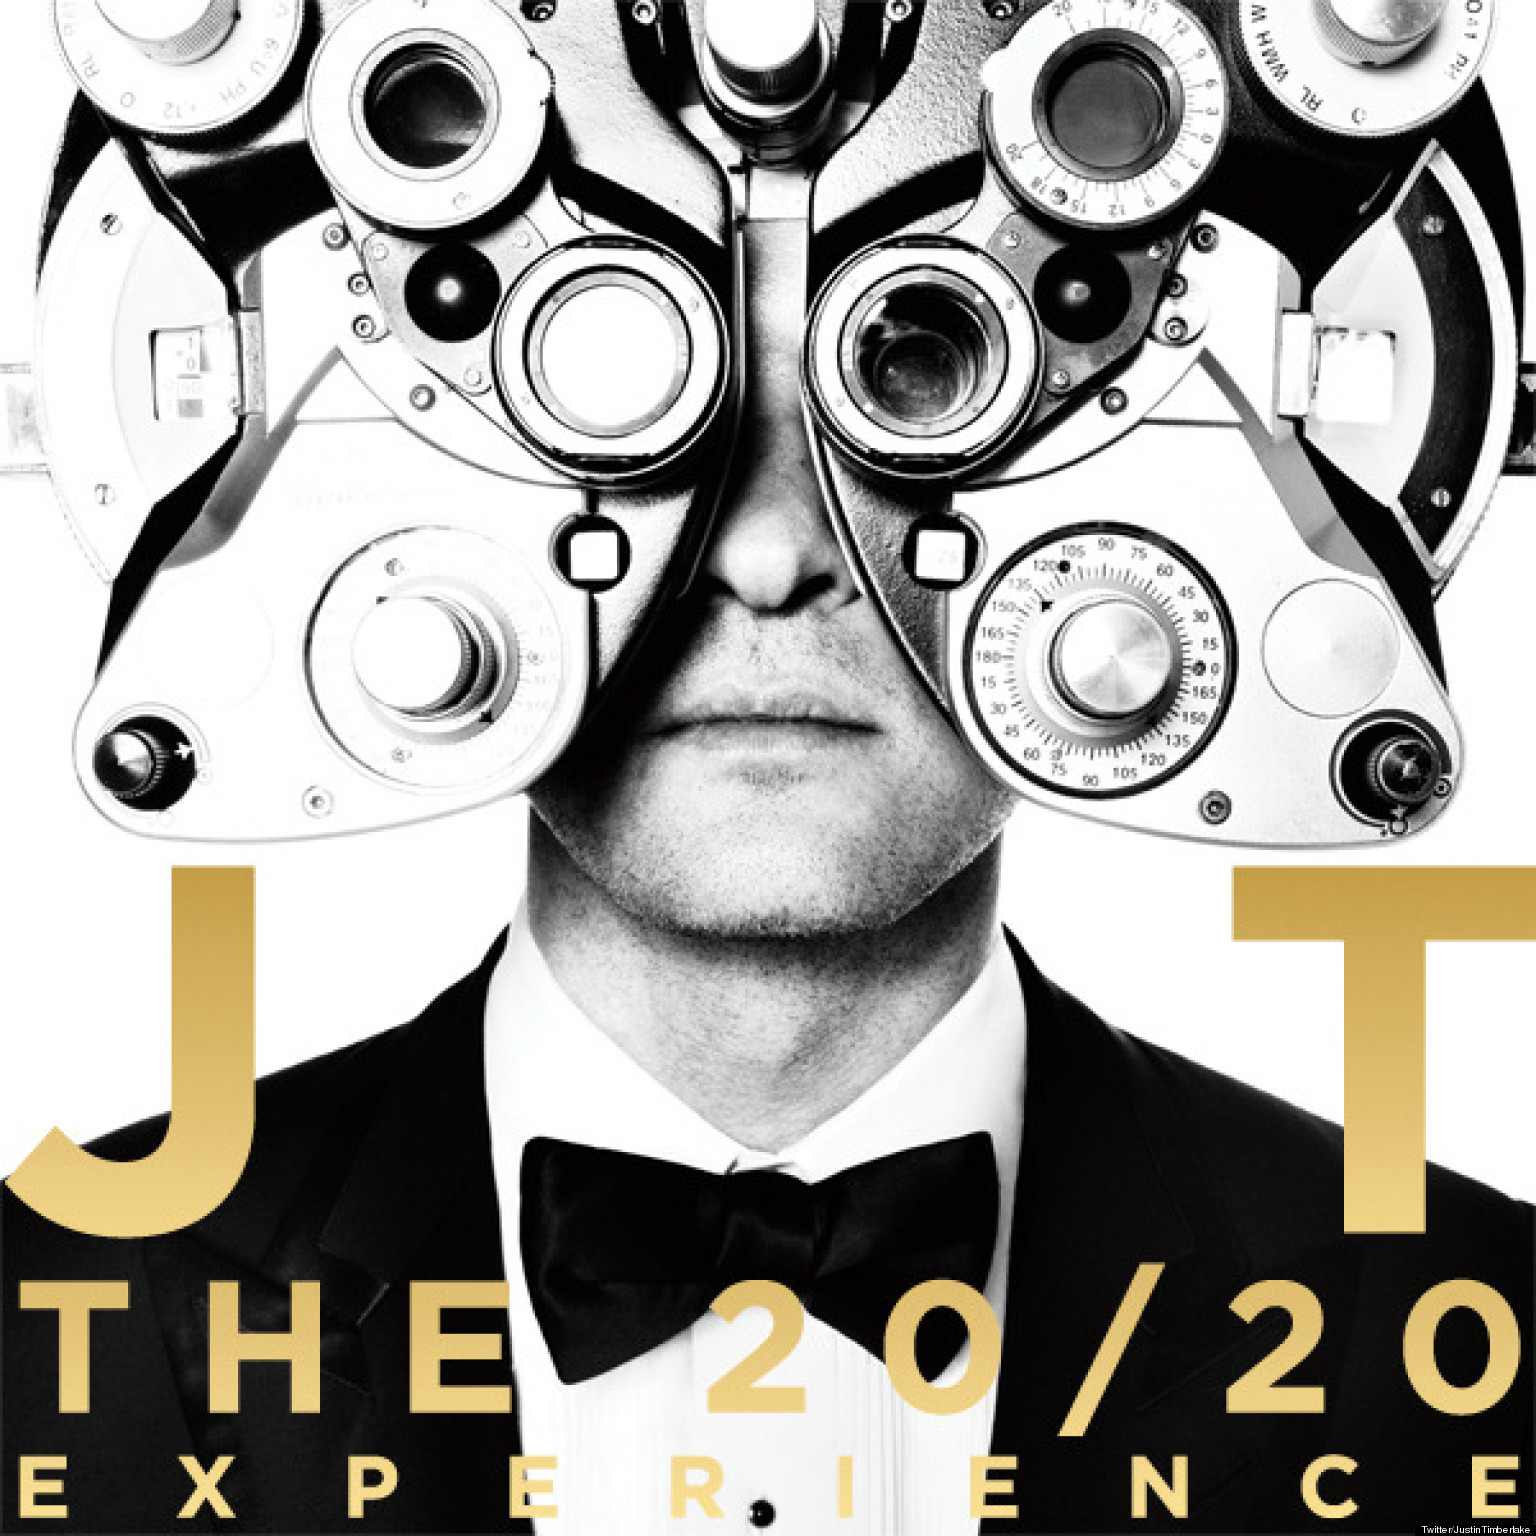 Futuresex Lovesounds Deluxe Version Justin Timberlake: 'The 20/20 Experience' Tracklist: Justin Timberlake